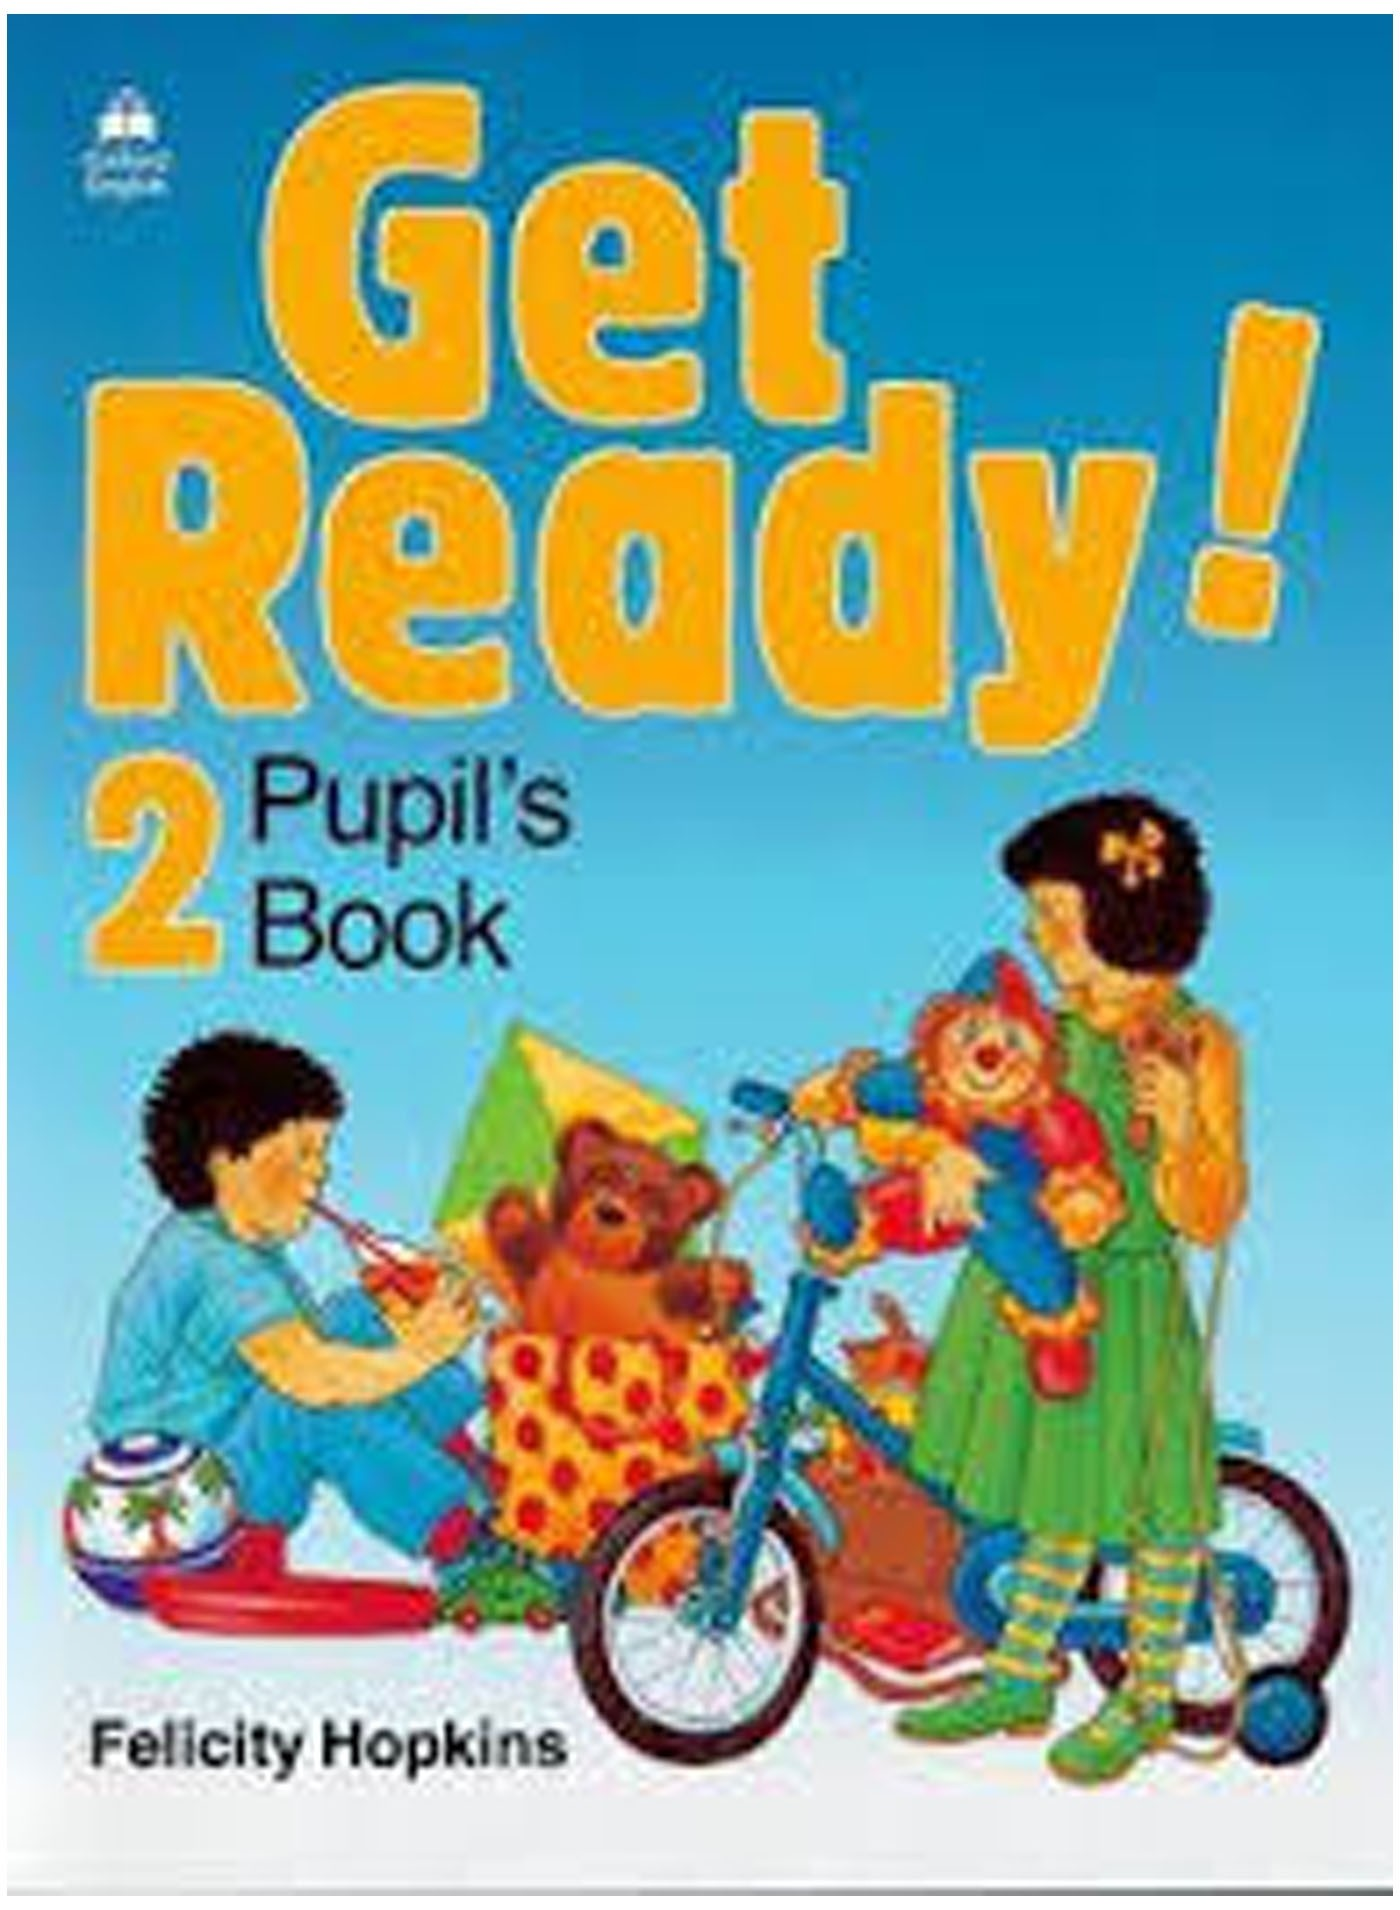 Get Ready! Pupil's 2 Book Only Felicity Hopkins English Language Inc Songs S147